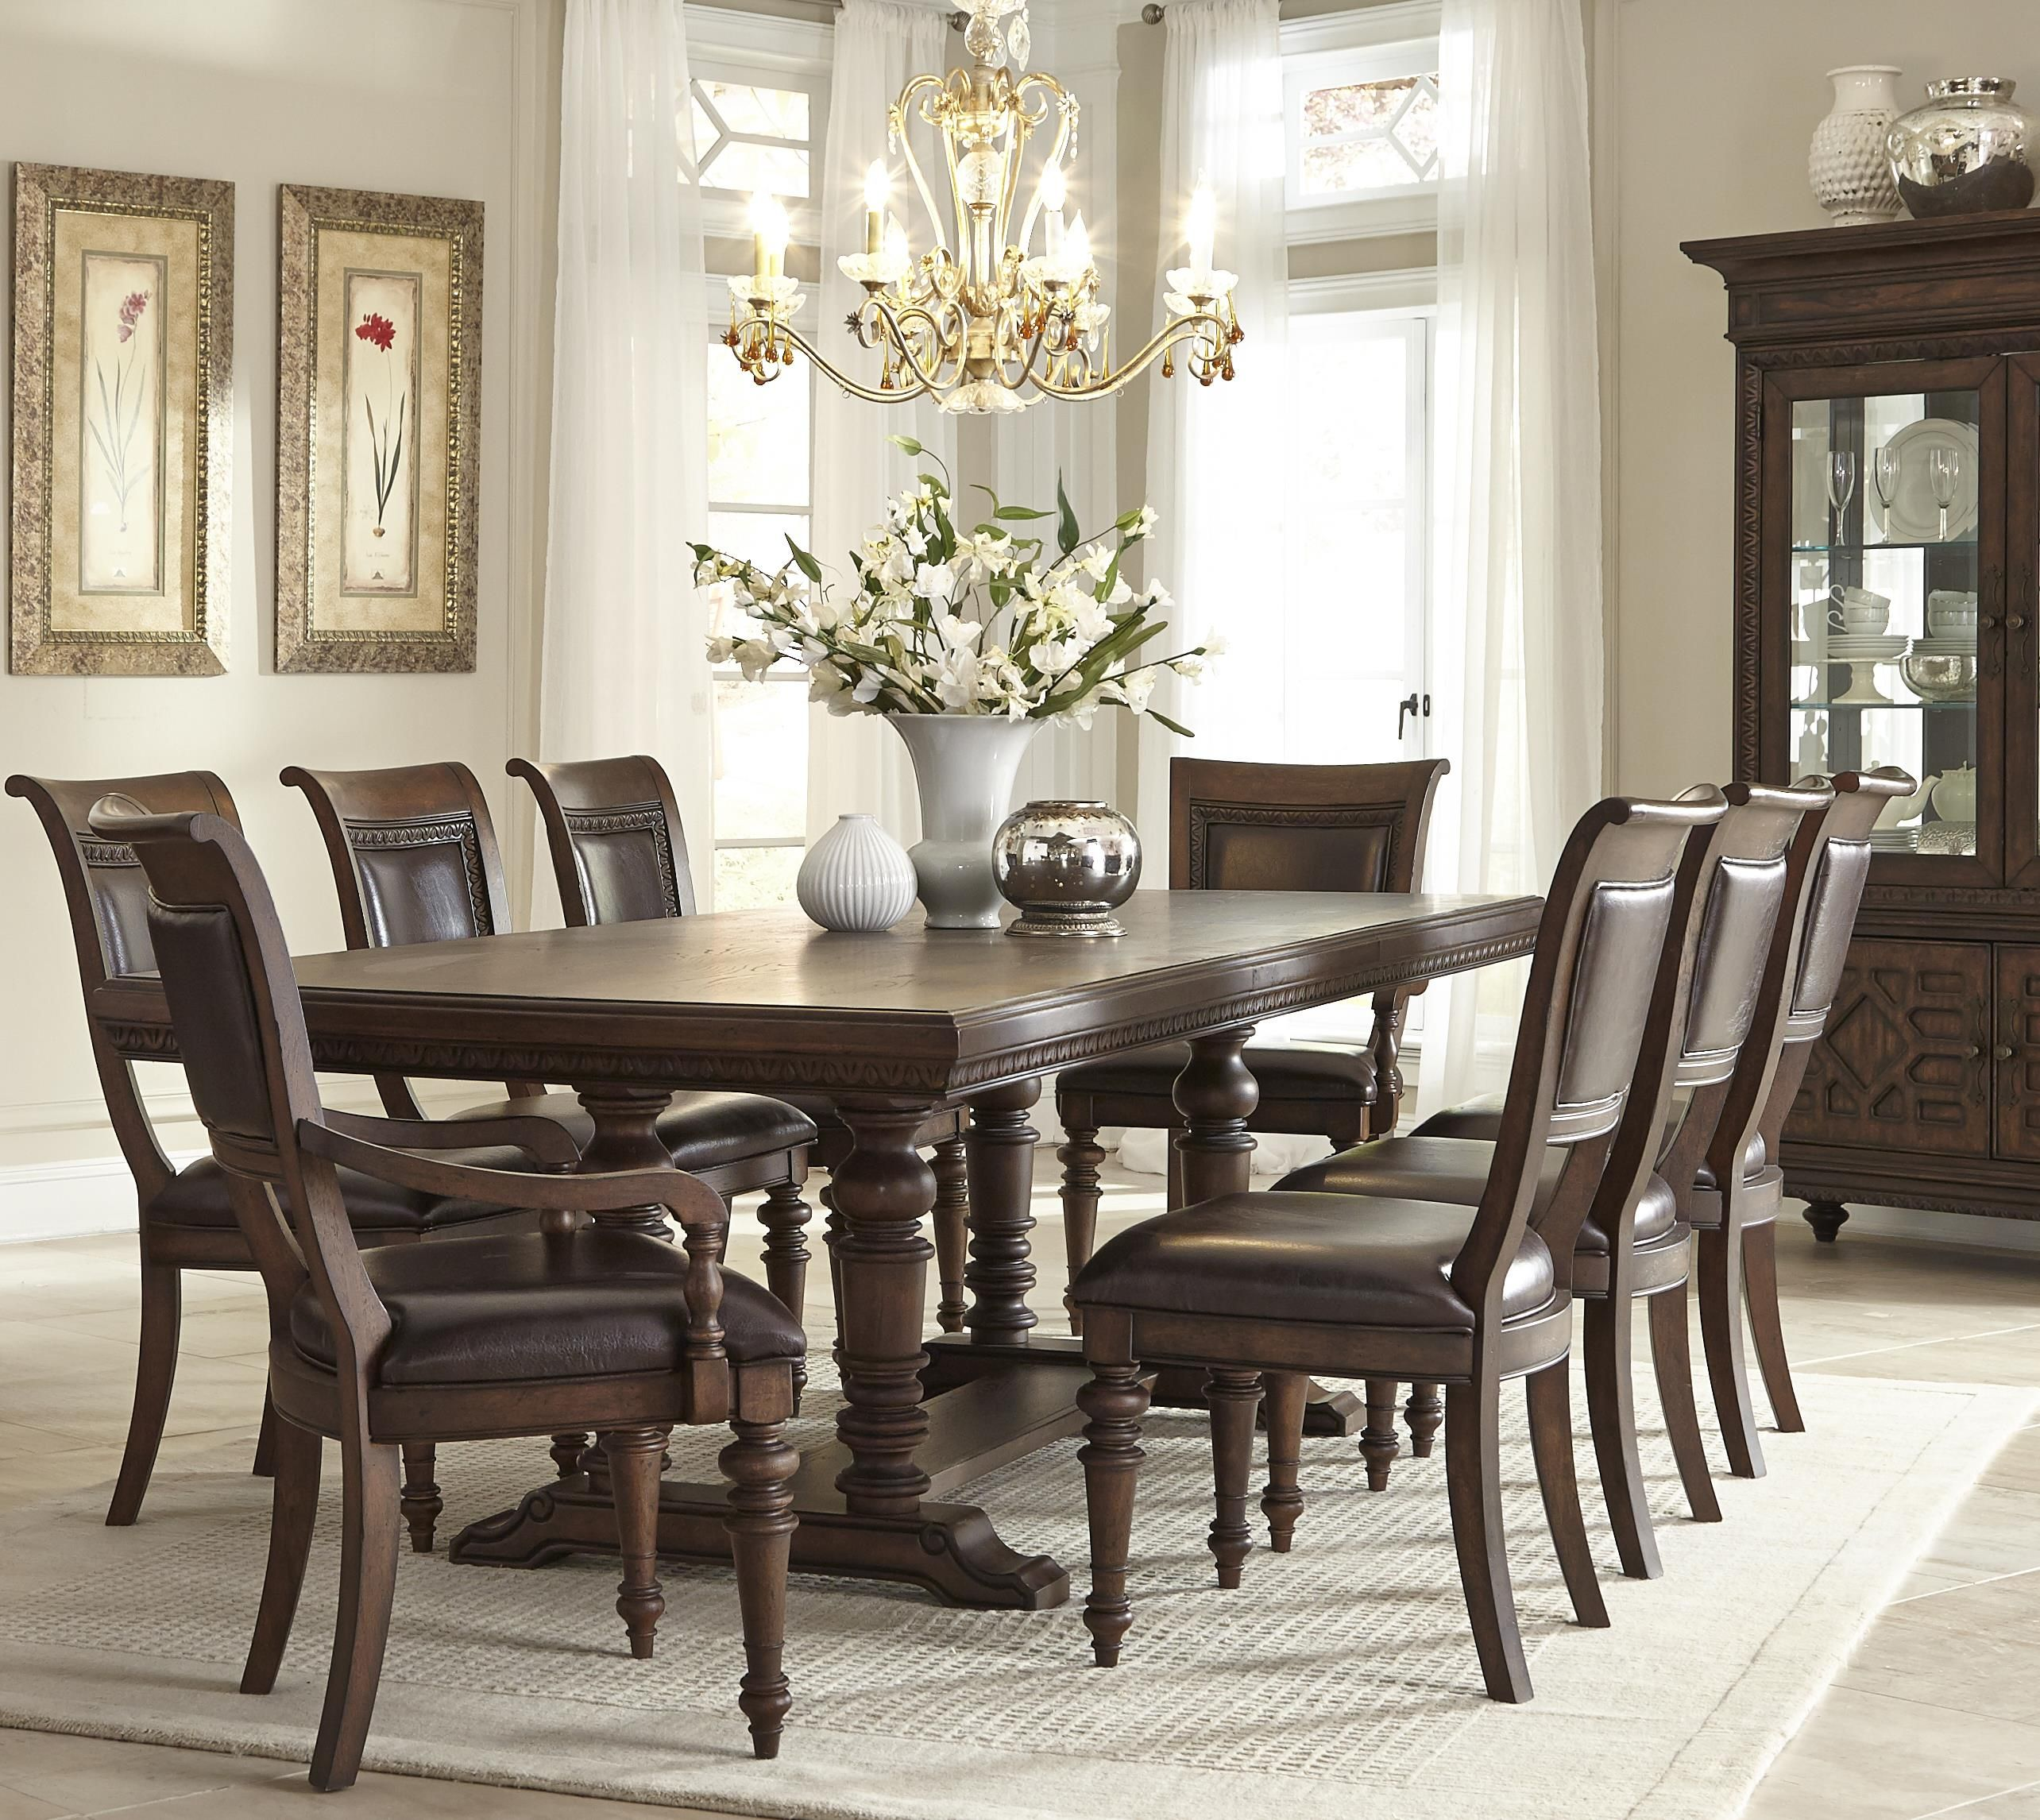 Palencia 9 Piece Table And Chair Setklaussner International Cool Klaussner Dining Room Furniture Decorating Design